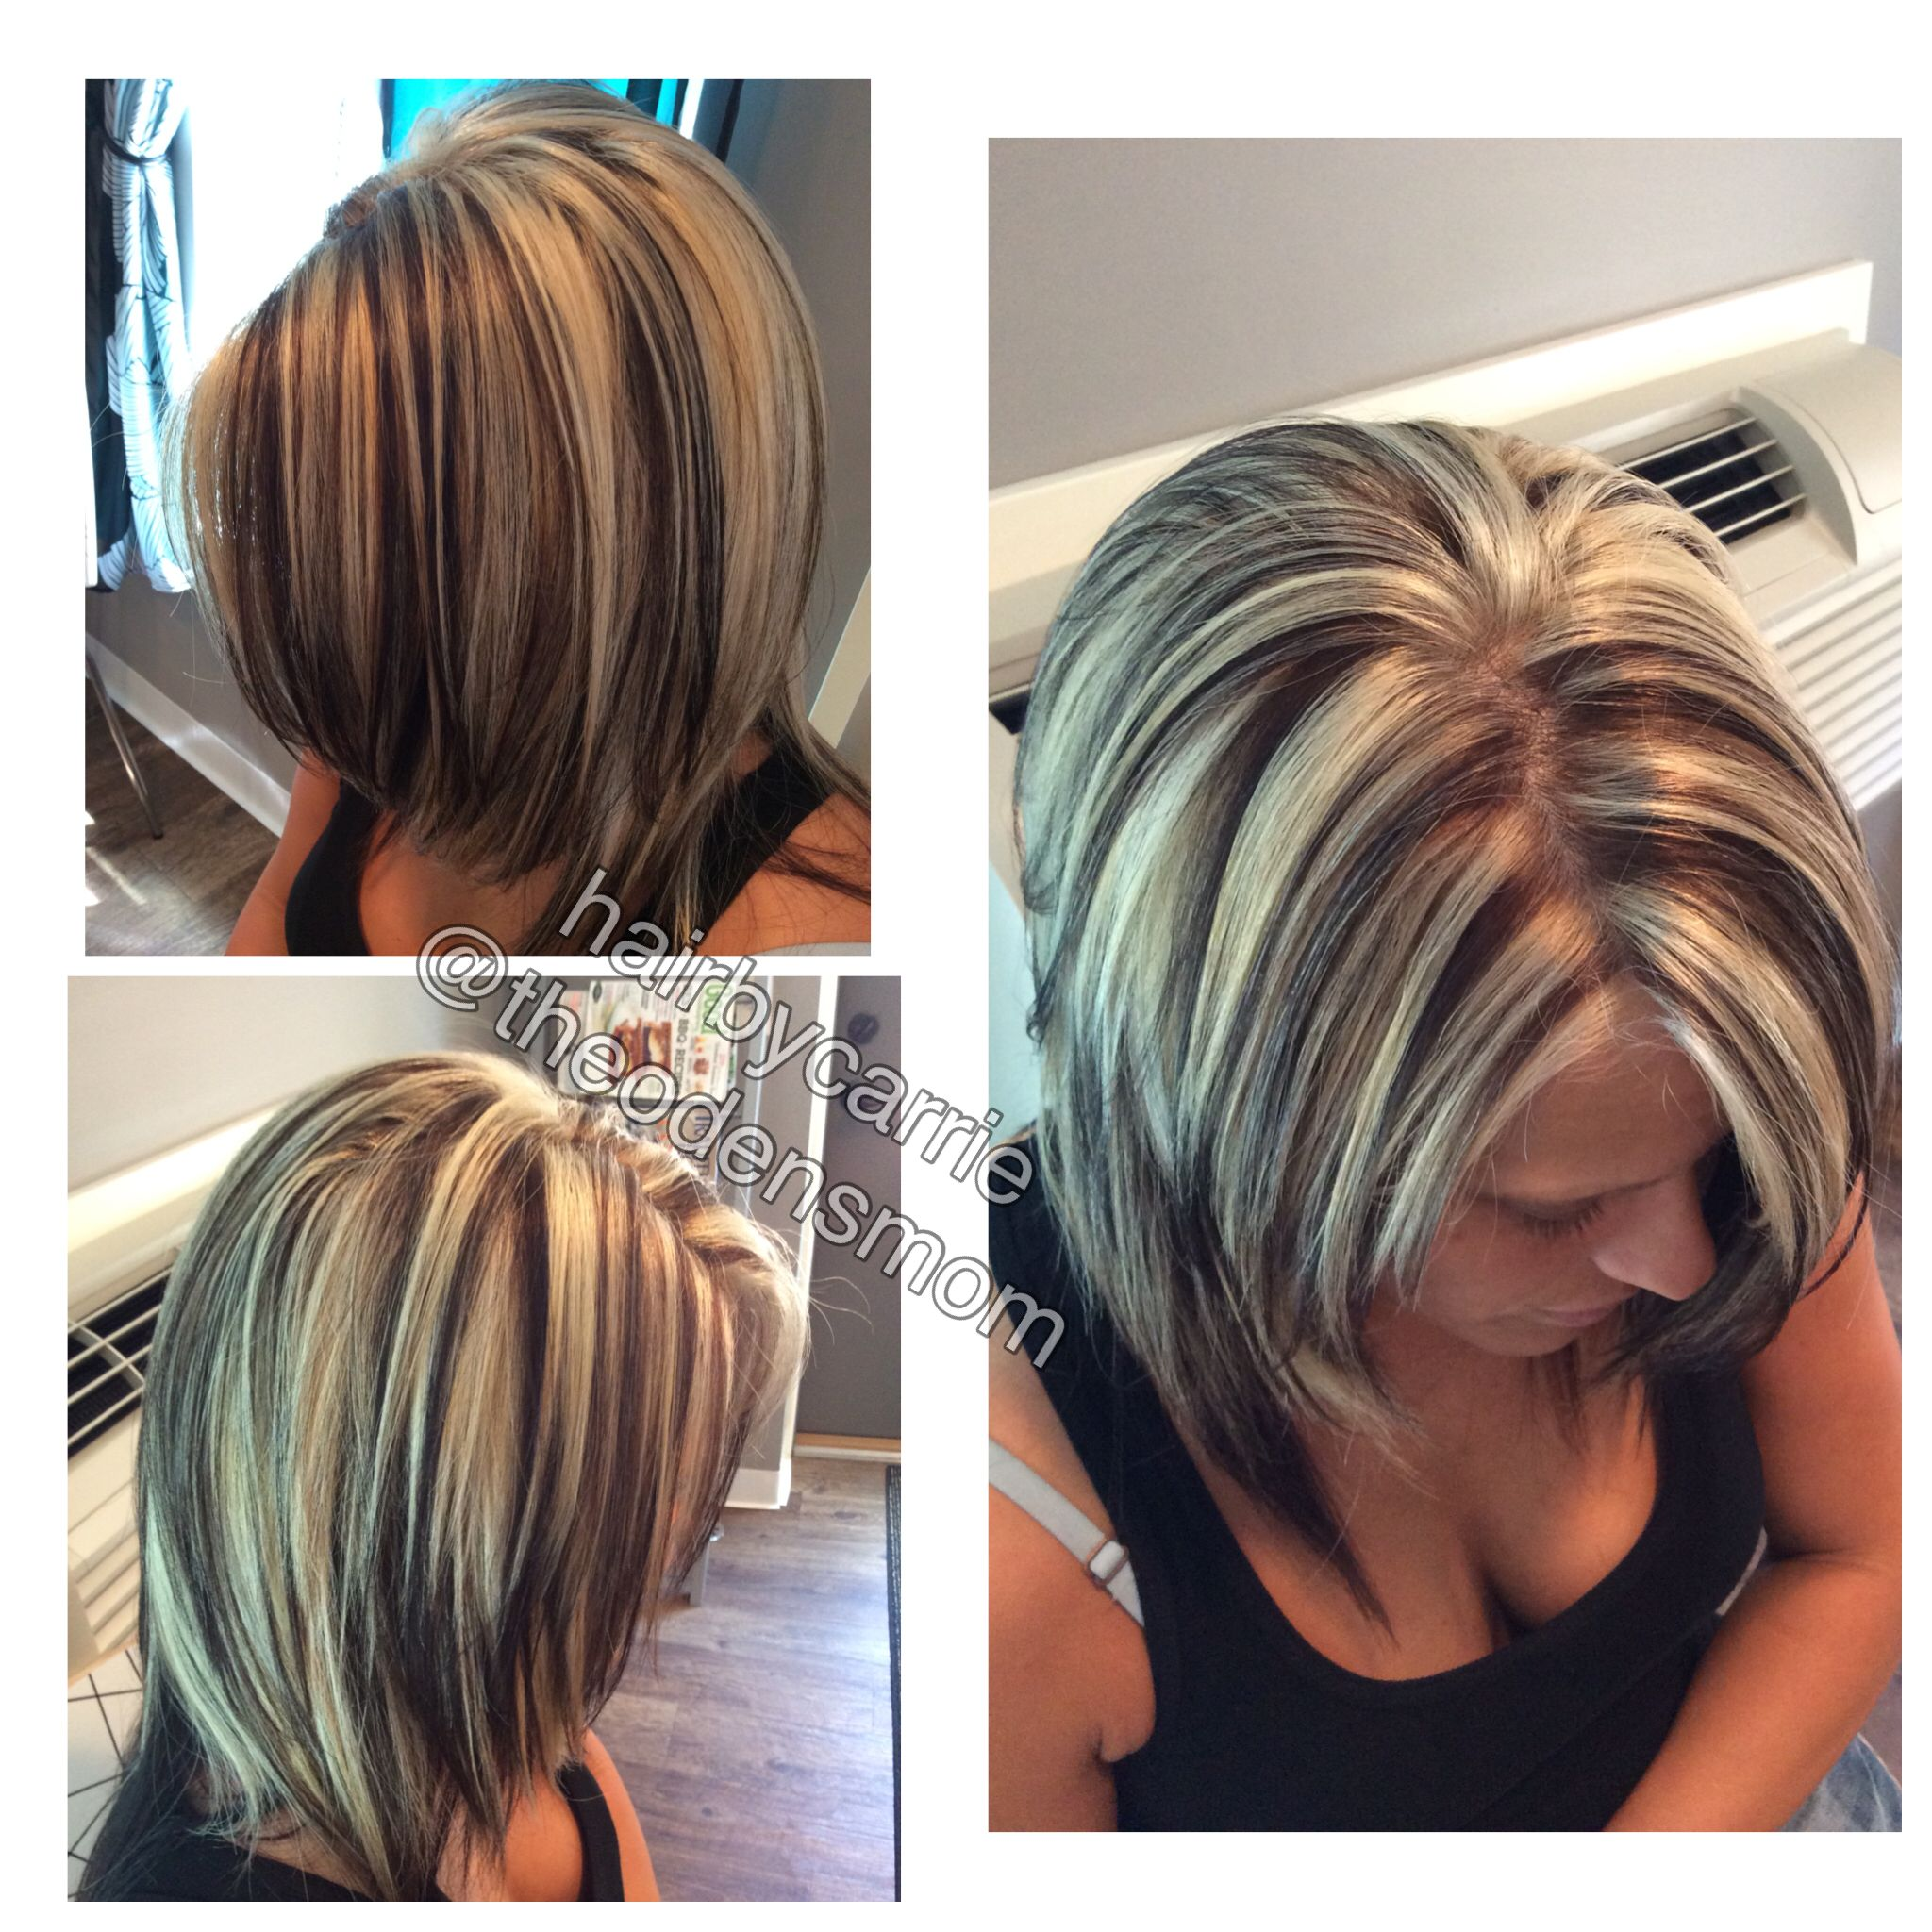 Chunky Highlights And Lowlights Platinum Hair Dark Brown Kenra Professional Color Foil Work By Carrie Murtaugh